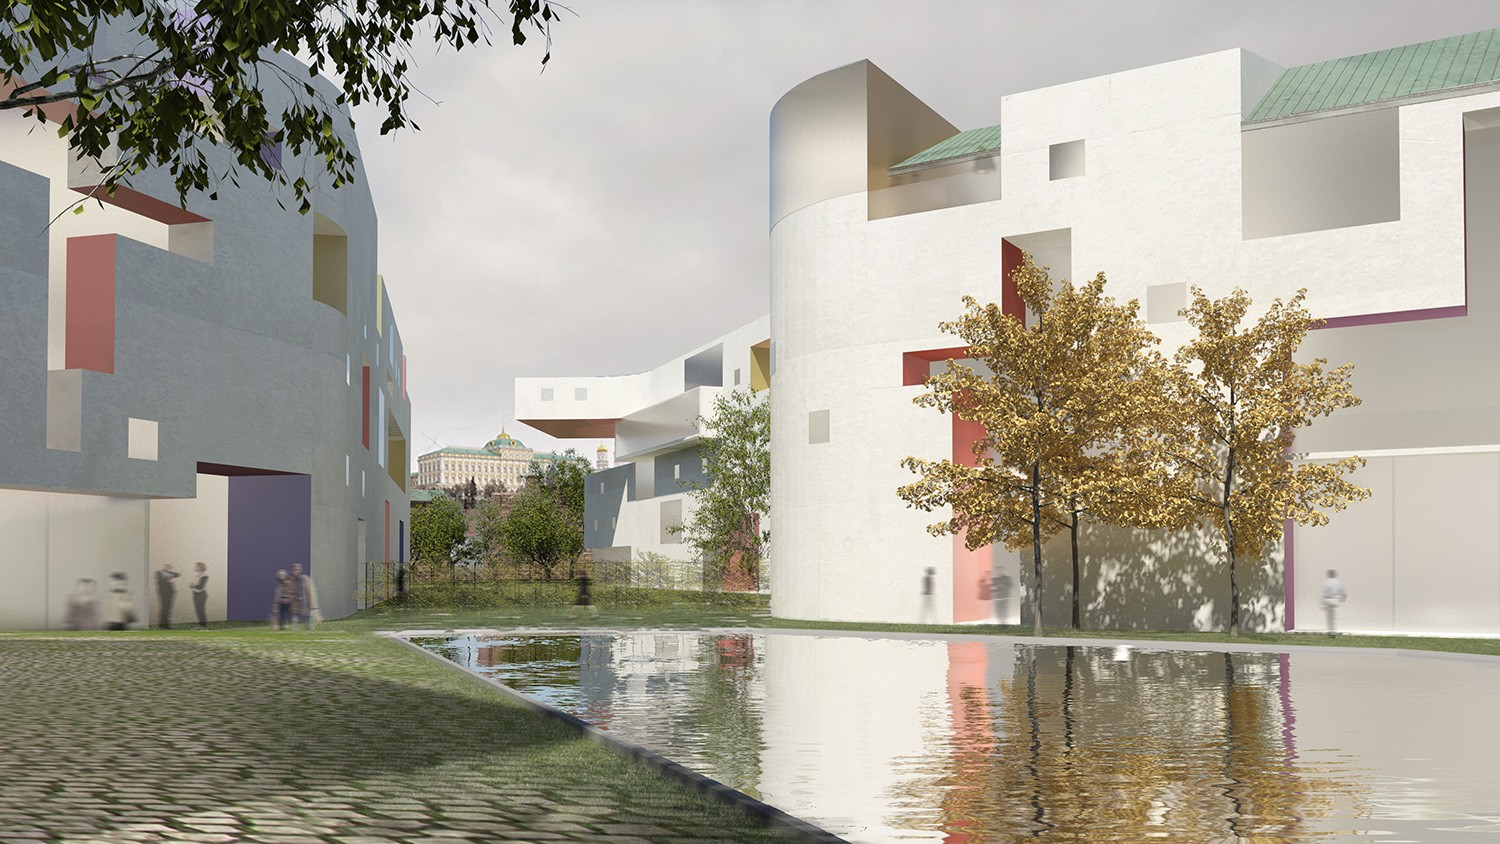 https://s3.us-east-2.amazonaws.com/steven-holl/uploads/projects/project-images/StevenHollArchitects_MGI_SHA-Moscow-Privategarden_WH.jpg